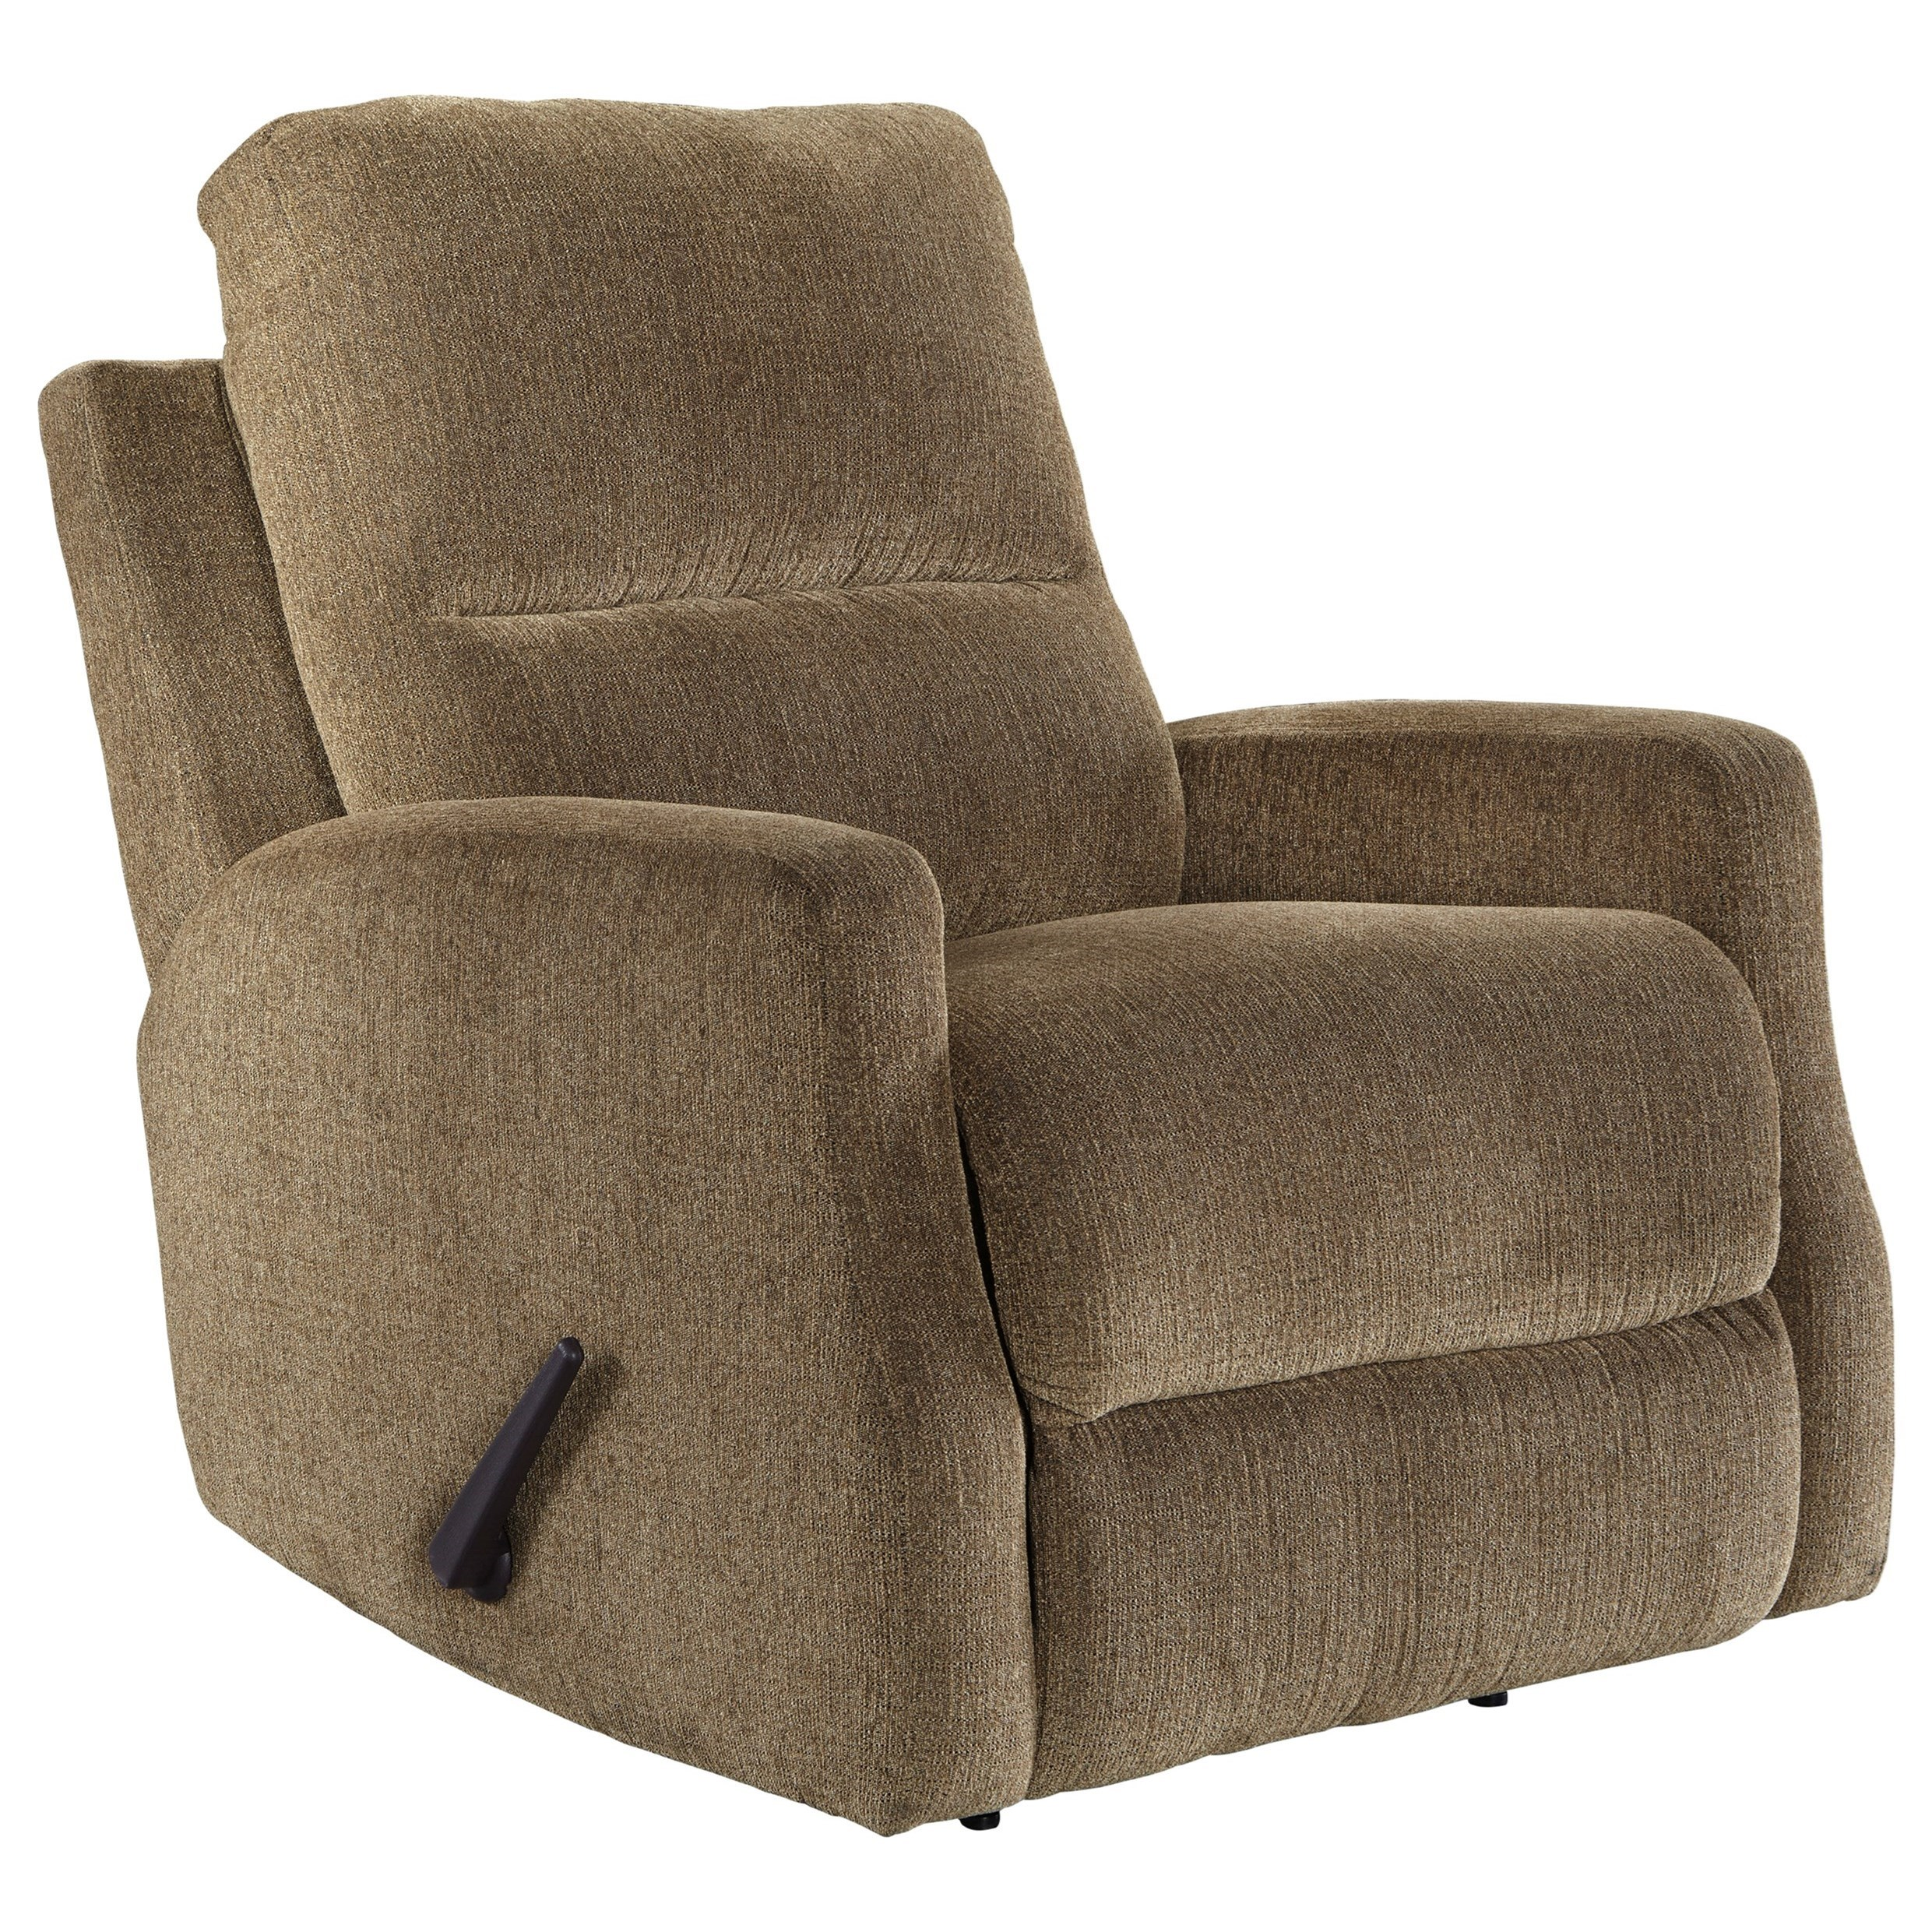 Signature Design by Ashley Fambro Rocker Recliner - Item Number: 6370425